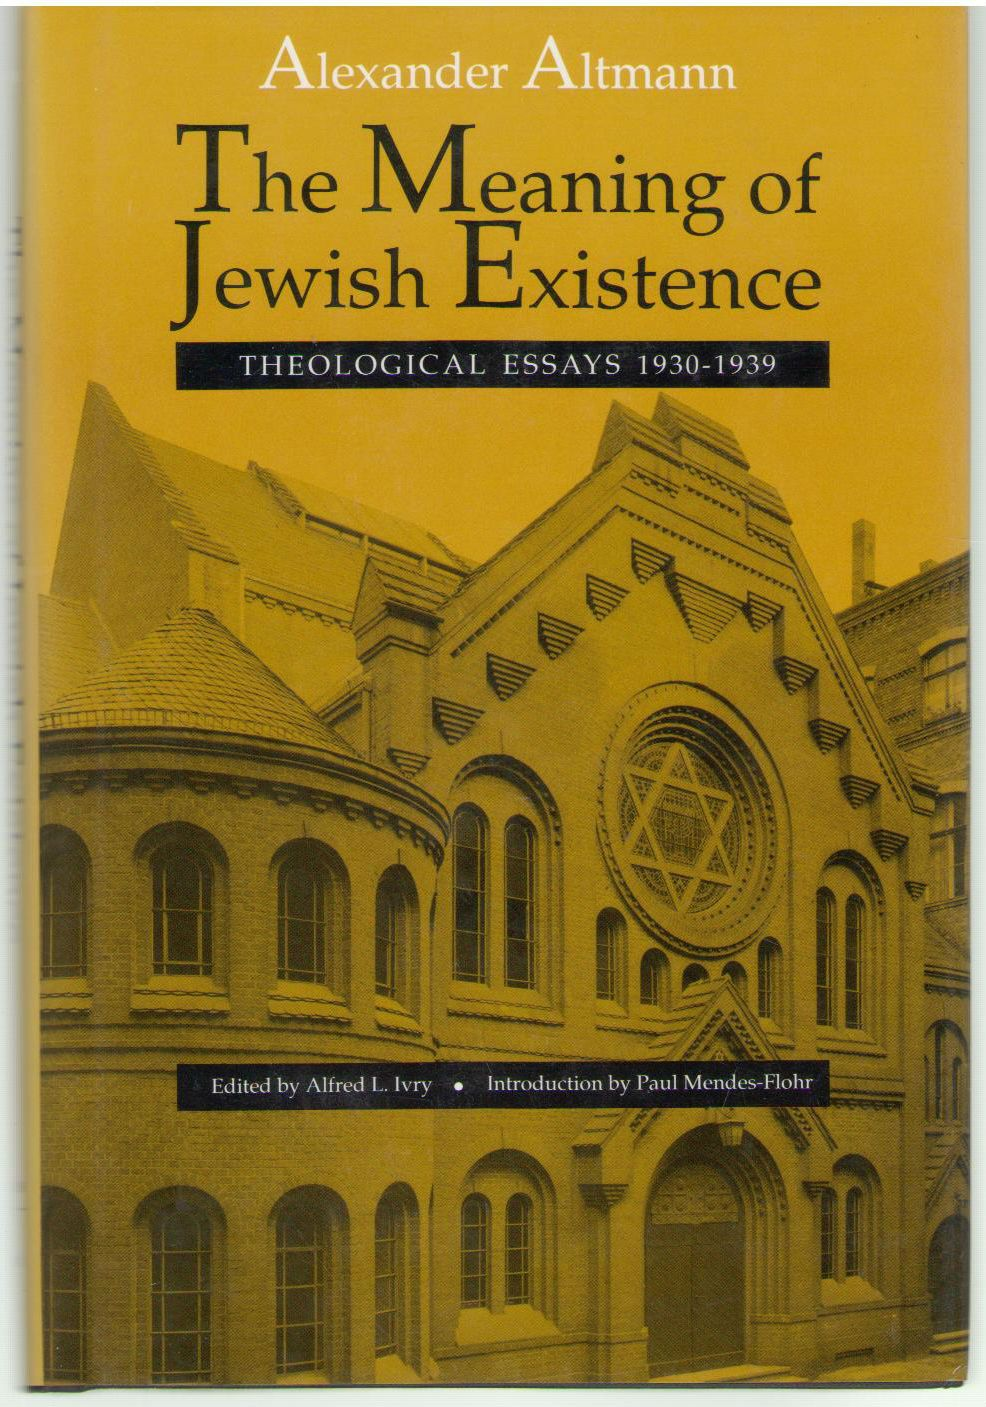 The Meaning of Jewish Existence: Theological Essays, 1930-1939 (The Tauber Institute Series for the Study of European Jewry), Altmann, Alexander